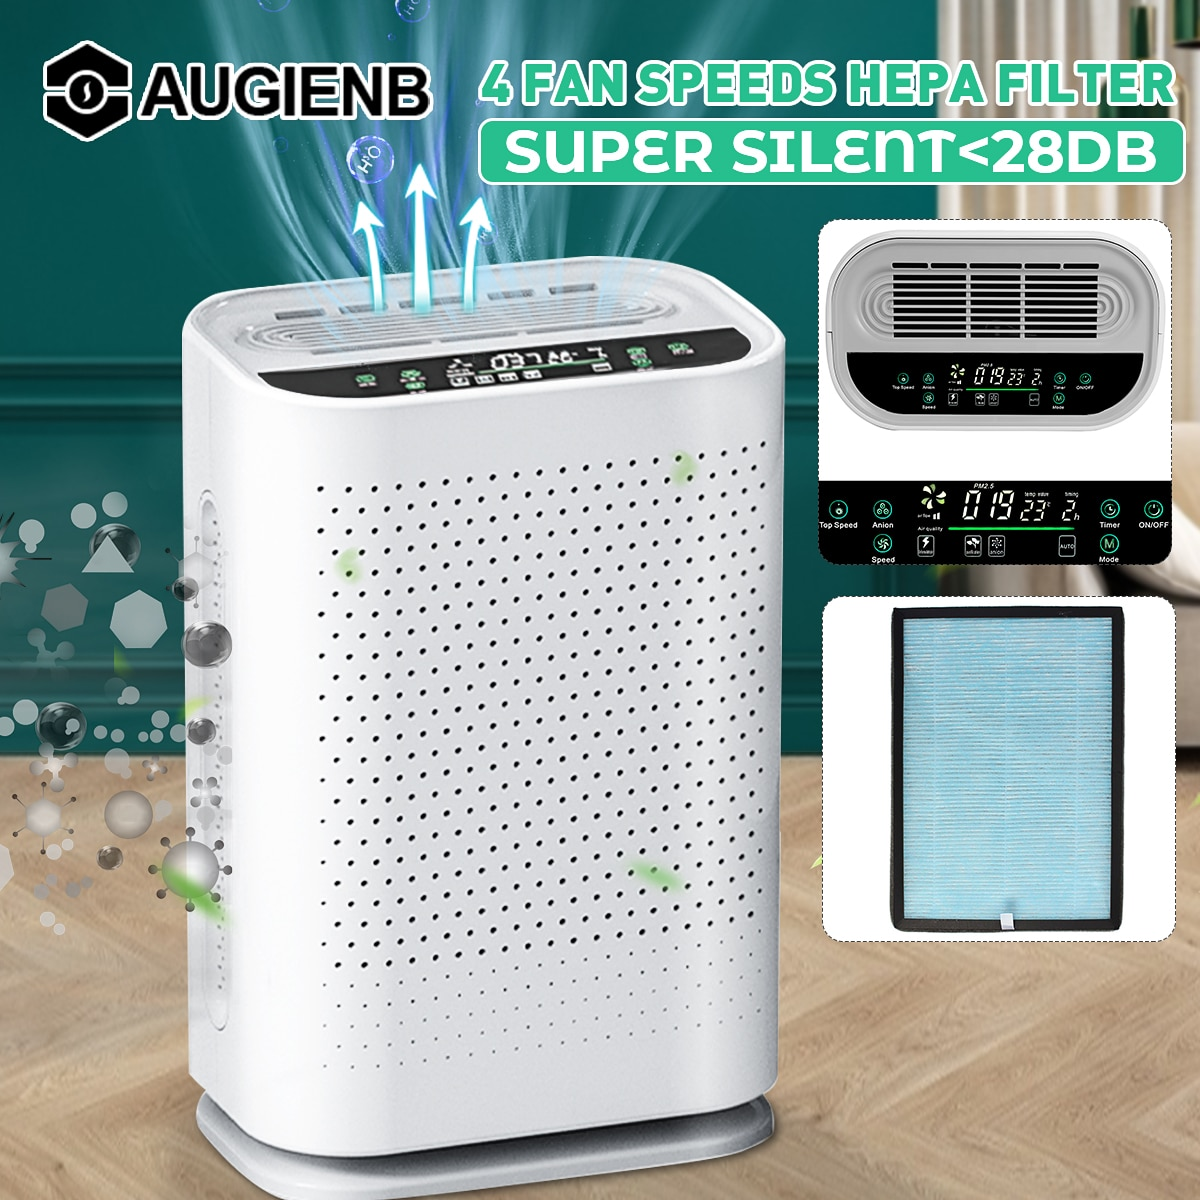 Air Purifier with HEPA Filter Negative Ions Air Cleaner Remove Formaldehyde PM2.5 Smoke Dust  Automatic Monitors Remote Control air purifier household negative ion air filter portable carry on necklace remove smoke formaldehyde purify air